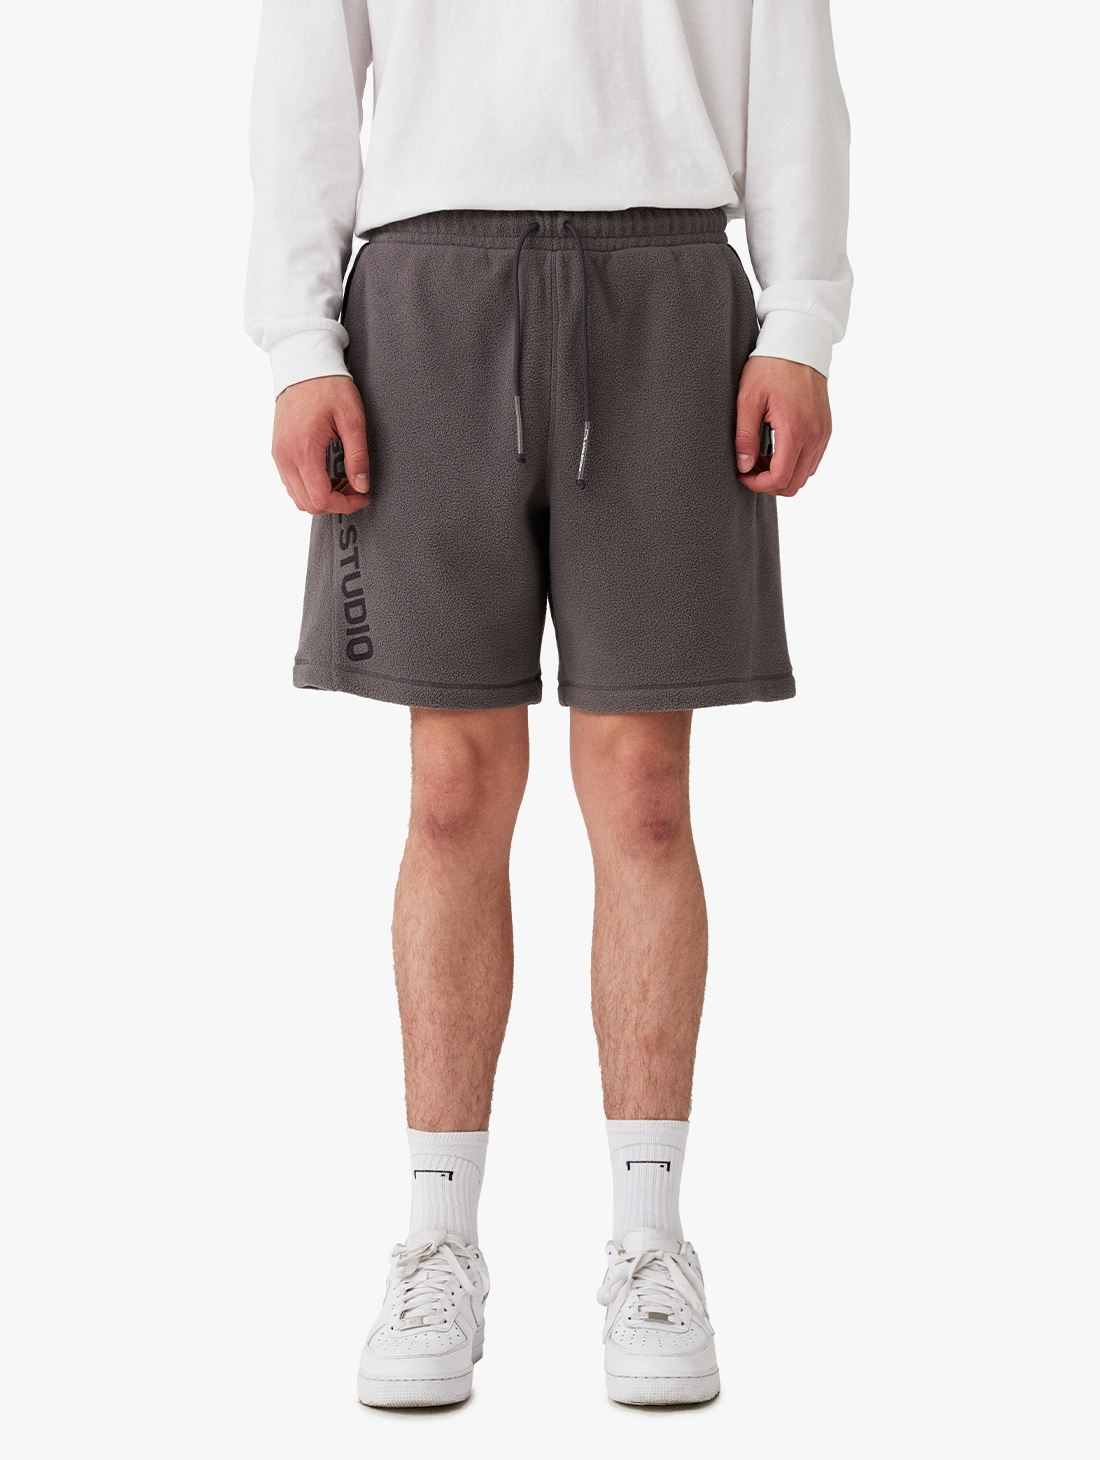 NYLON METAL MIXED FLEECE SHORTS (2 Colors)